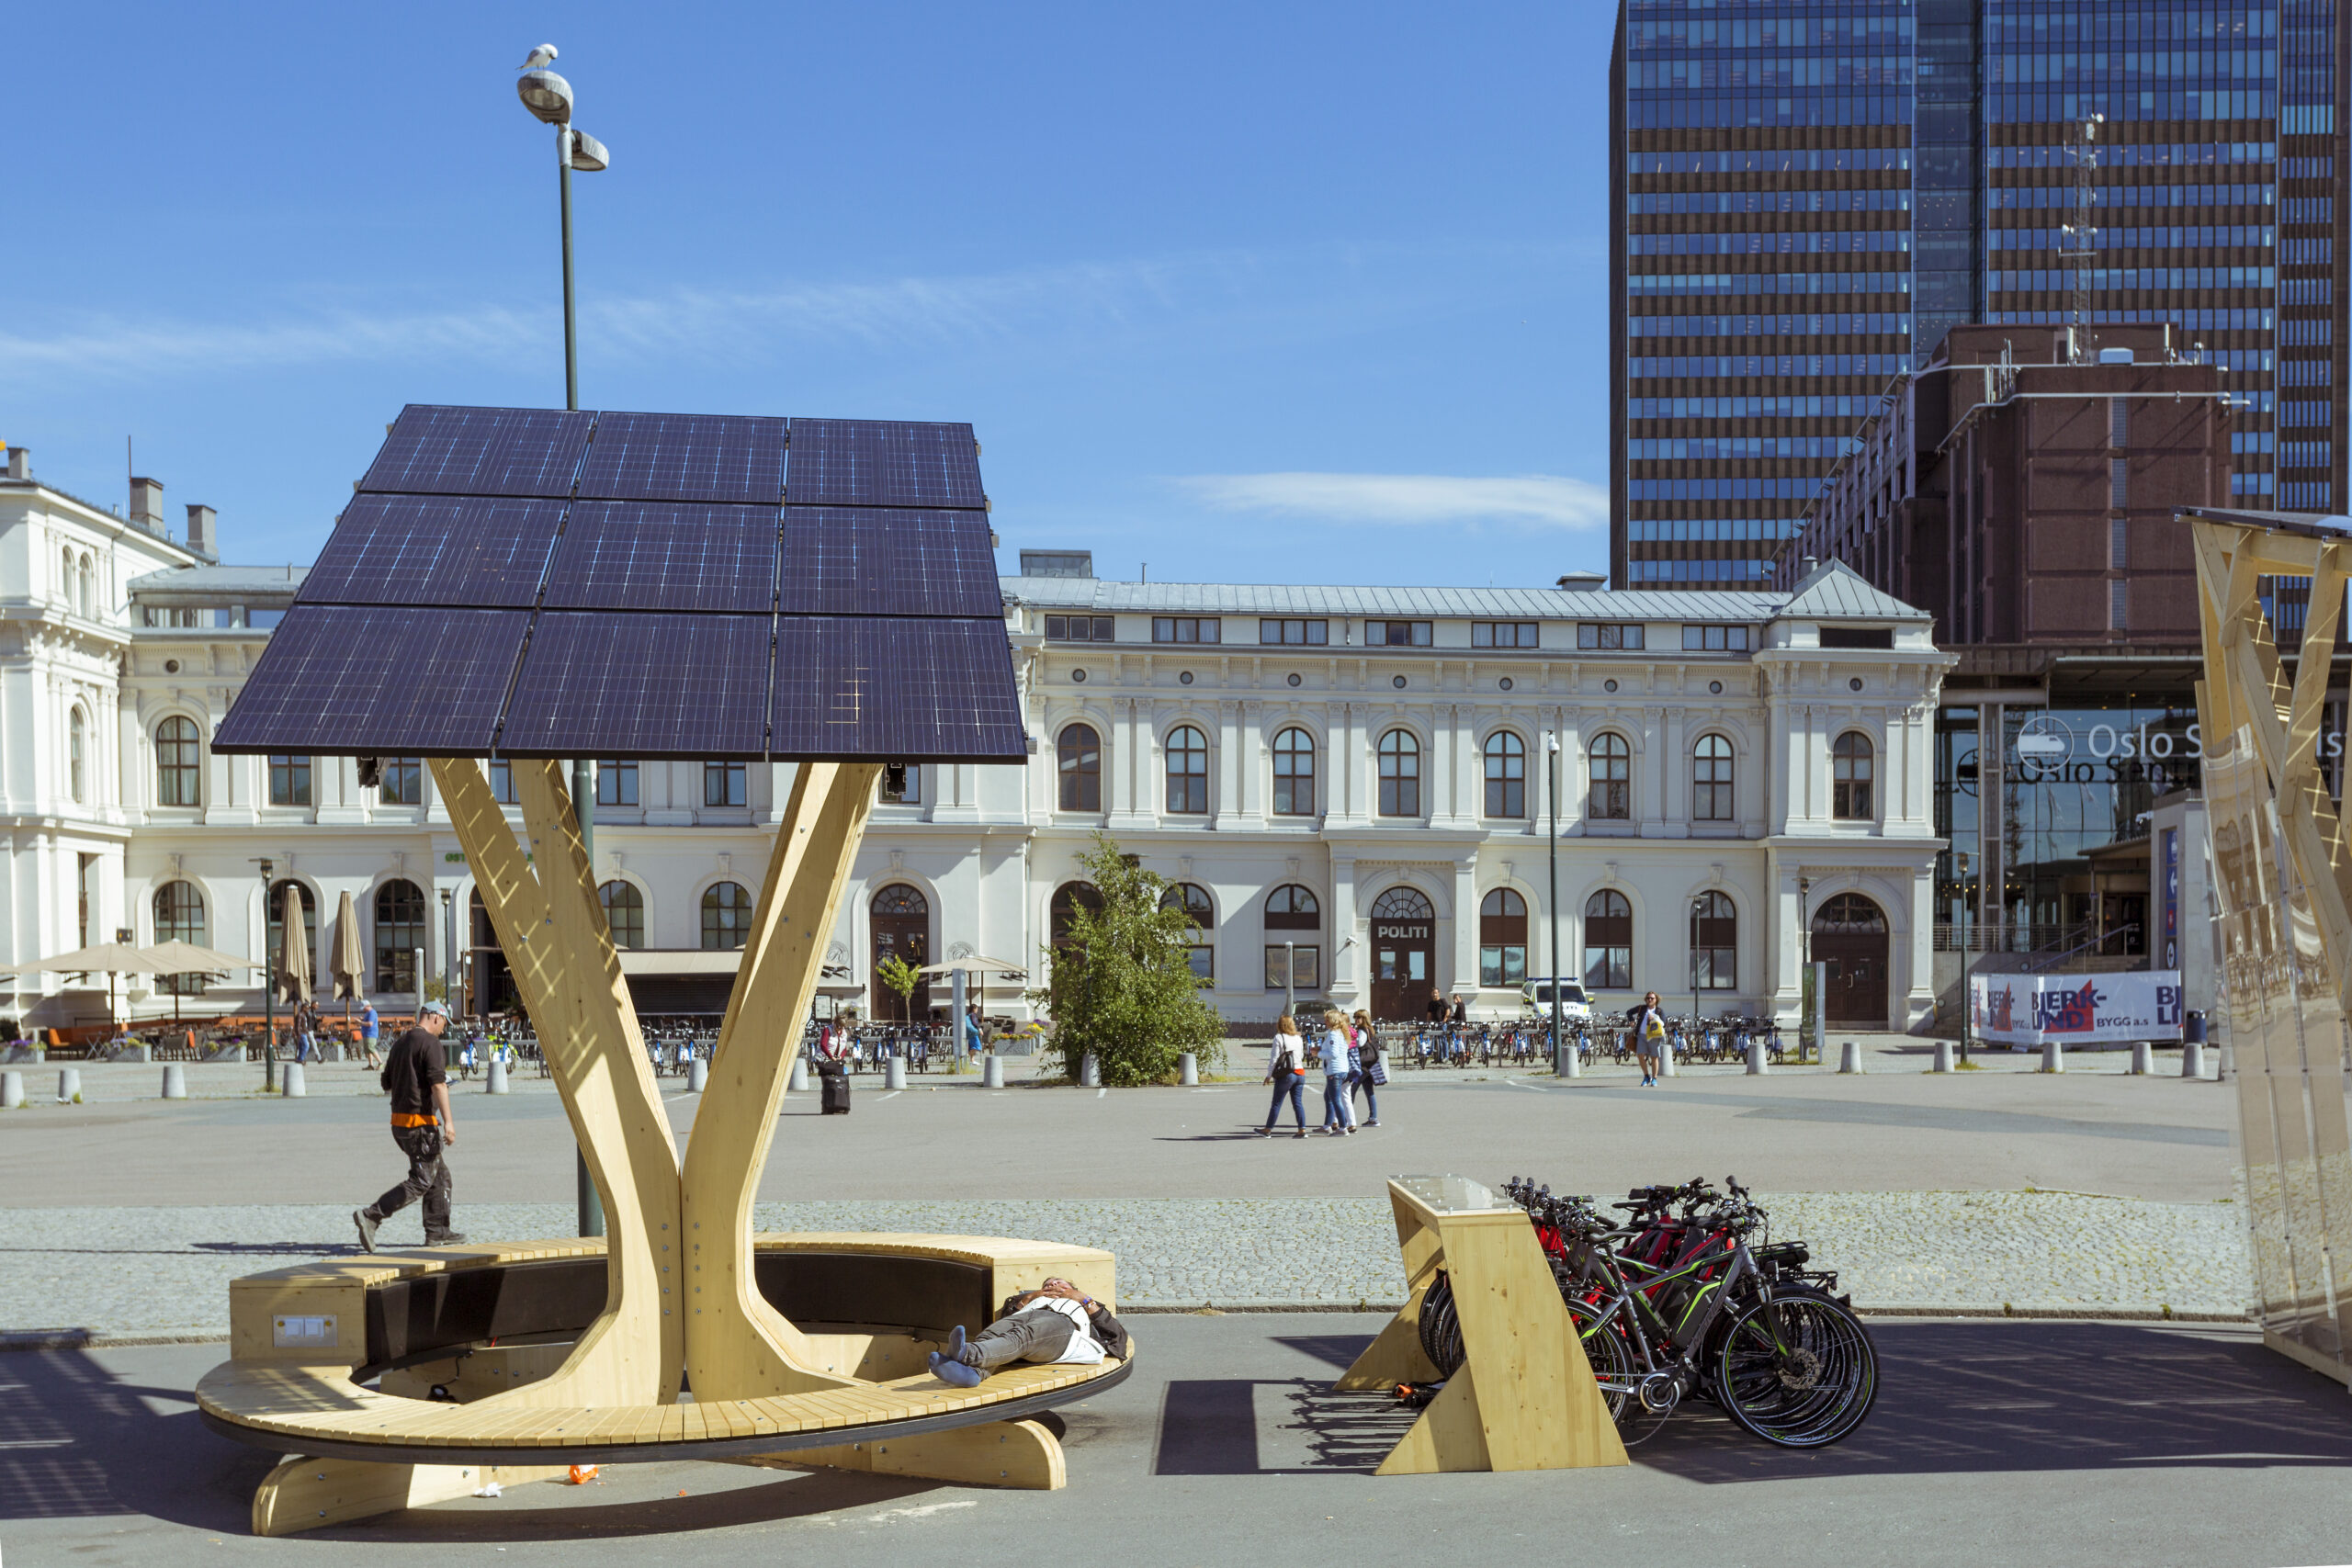 A bright sunny day in Oslo, a view of a wide square with official building in the background, and a bike docking station with a bench covered in a solar panel above it, on which someone is napping.